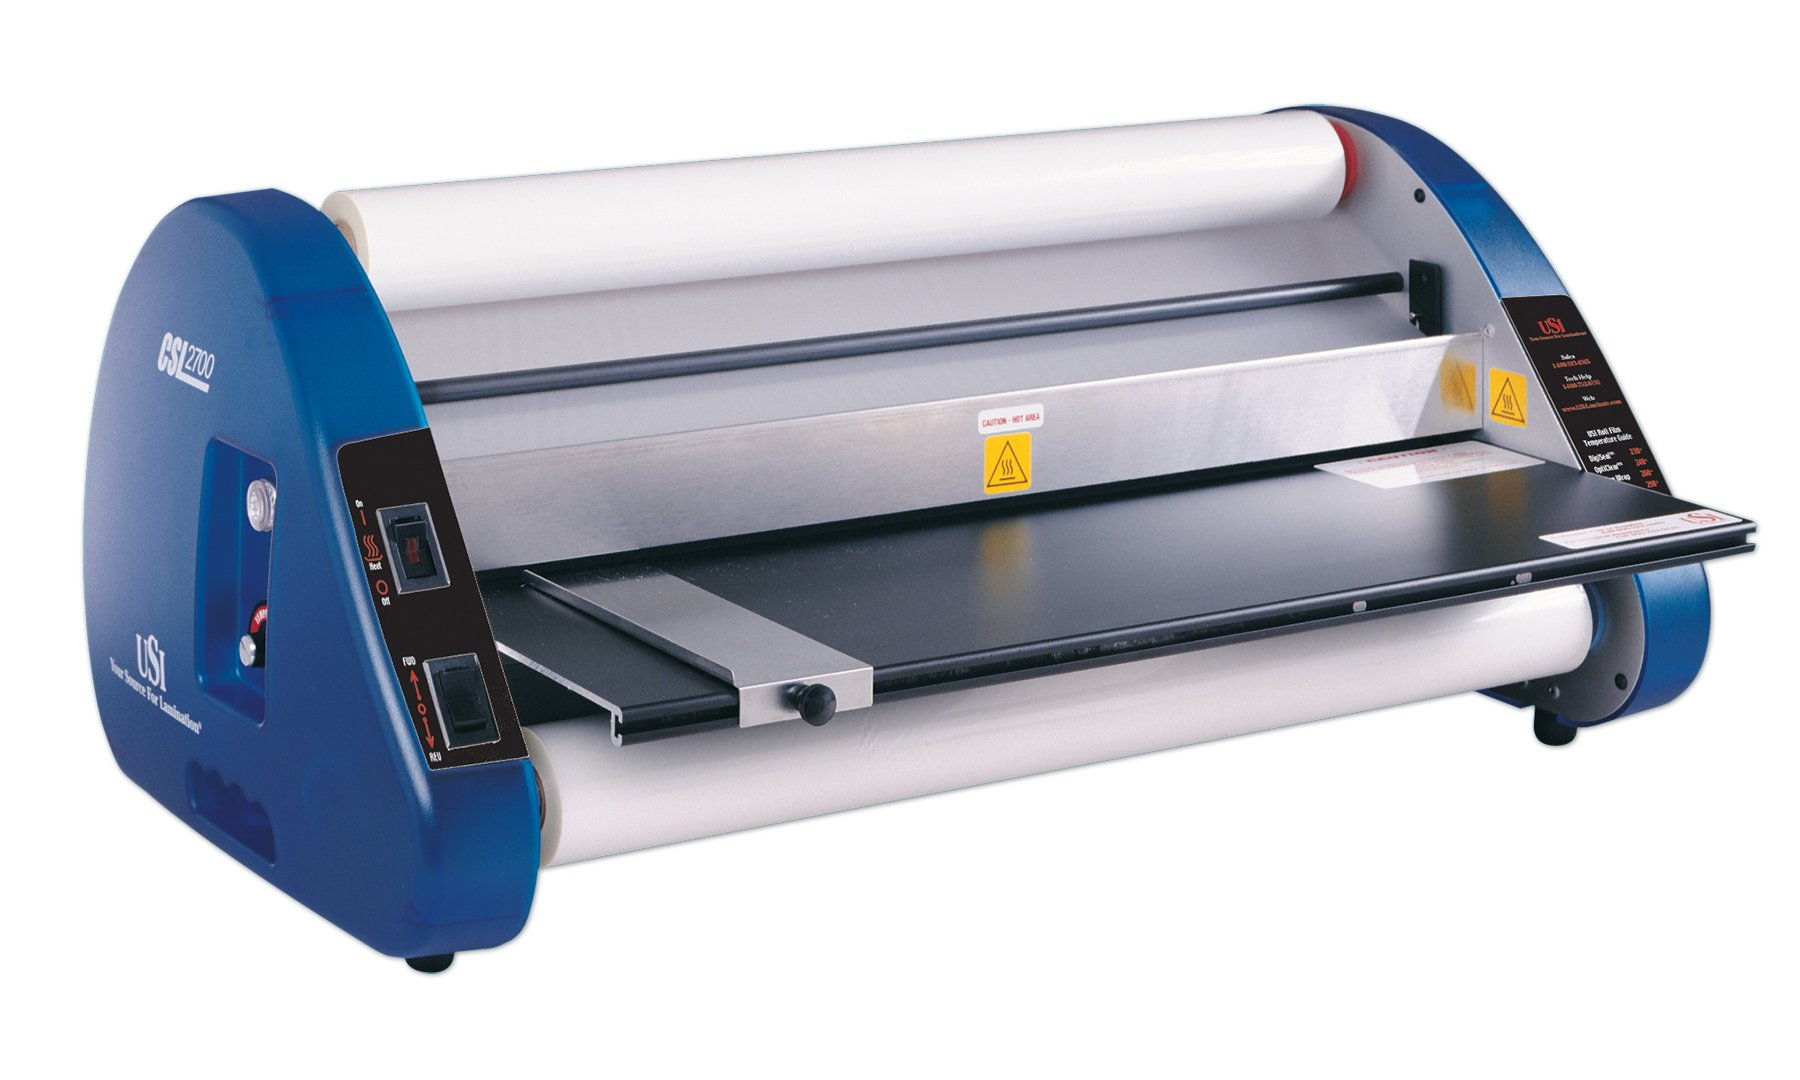 USI Thermal (Hot) Roll Laminator, CSL 2700, Laminates Films up to 27 Inches Wide and 3 Mil Thick, 1 Inch Core; UL Listed, 2-YEAR WARRANTY